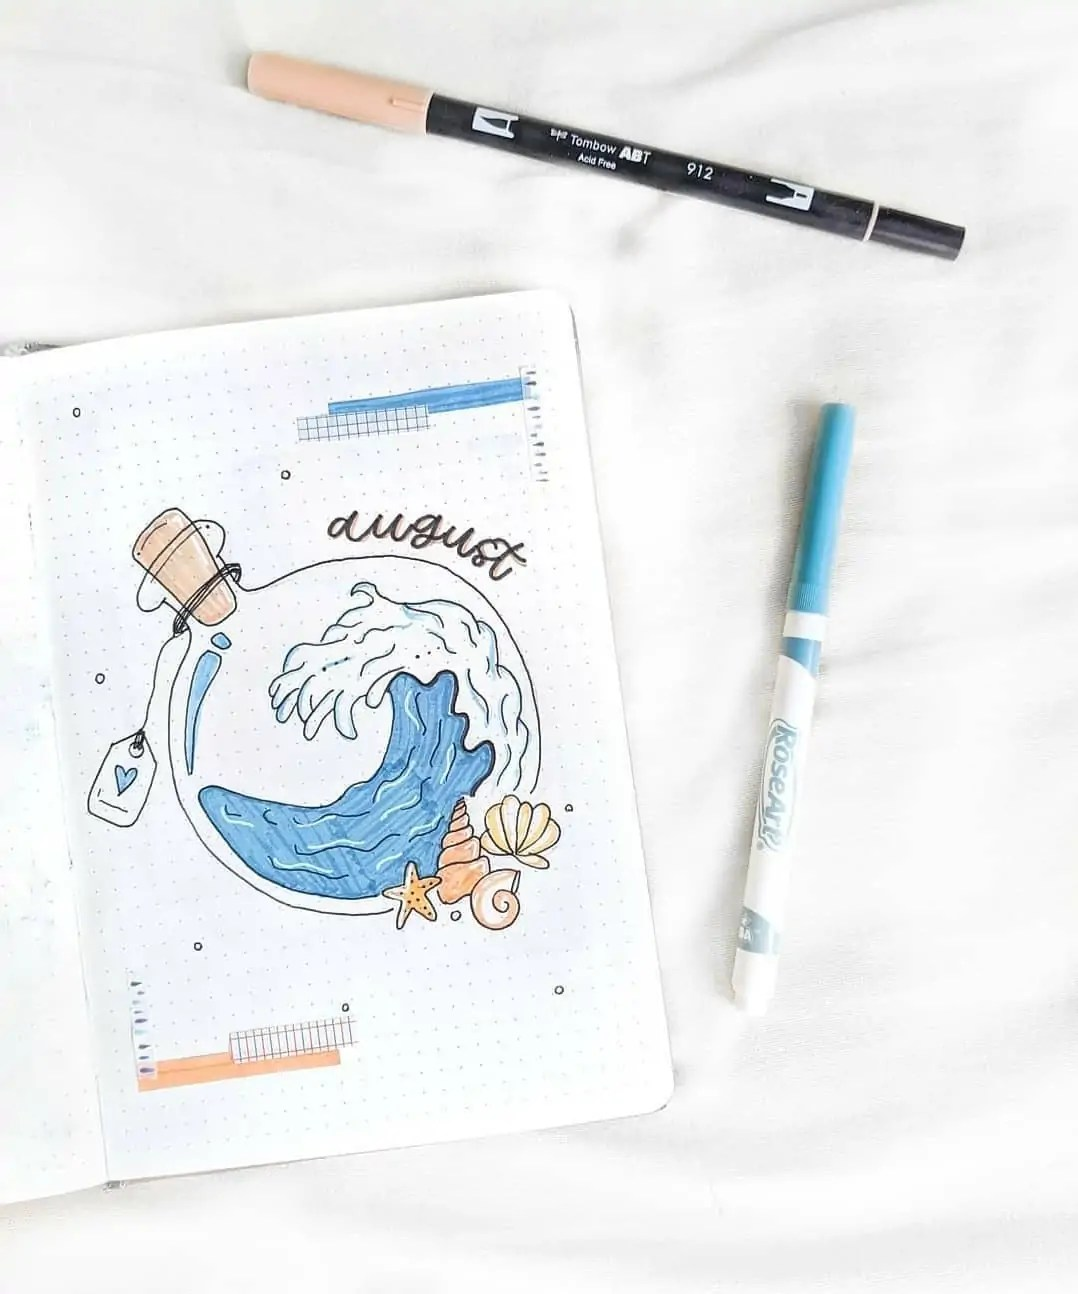 100+ Bullet Journal Ideas that you have to see and copy today! 316